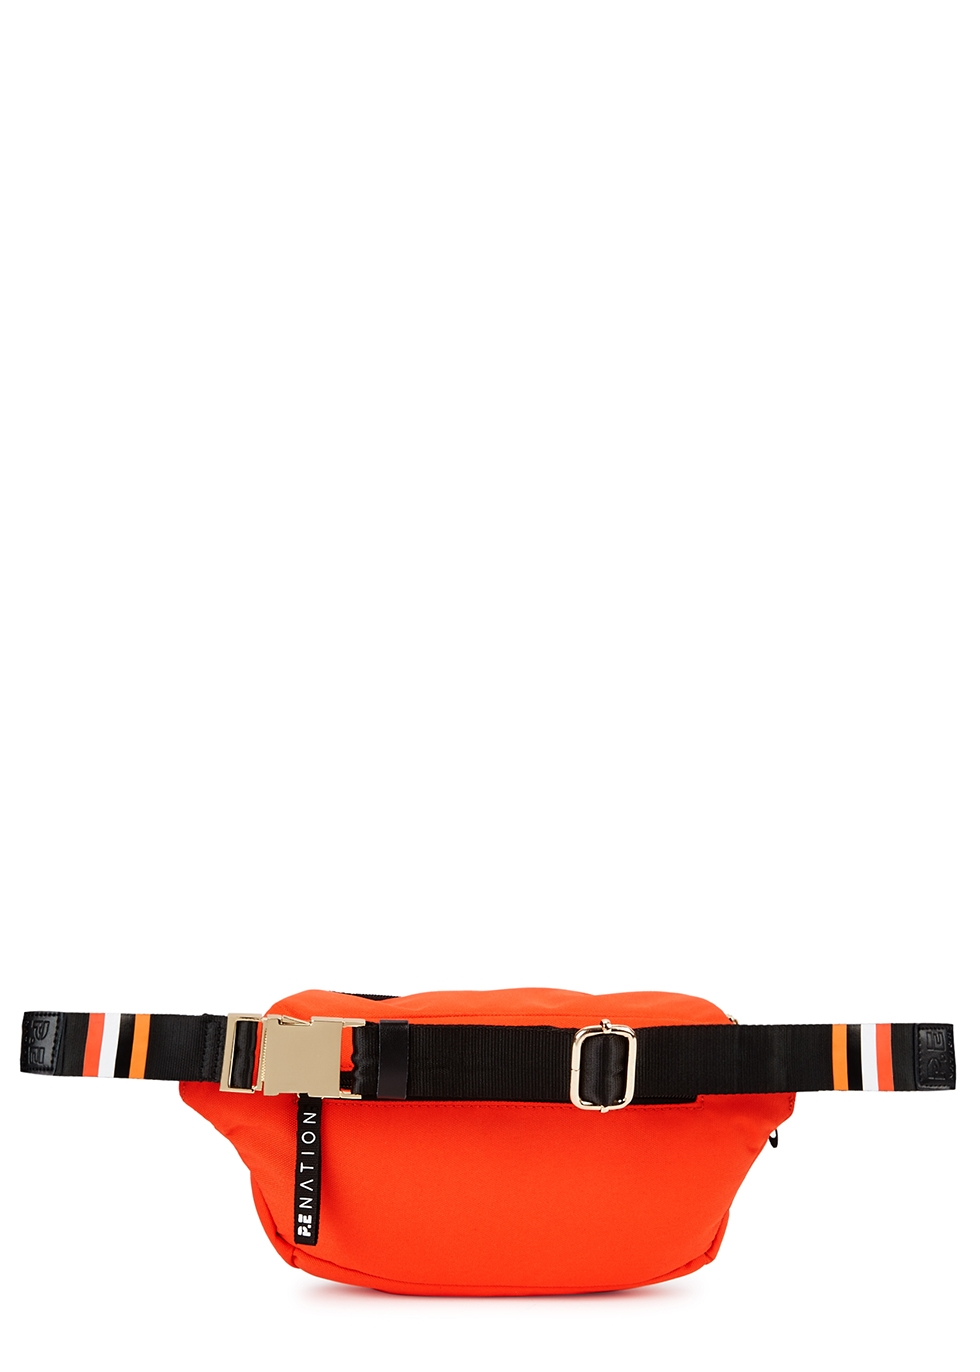 Sonic Boom red canvas belt bag - P.E Nation